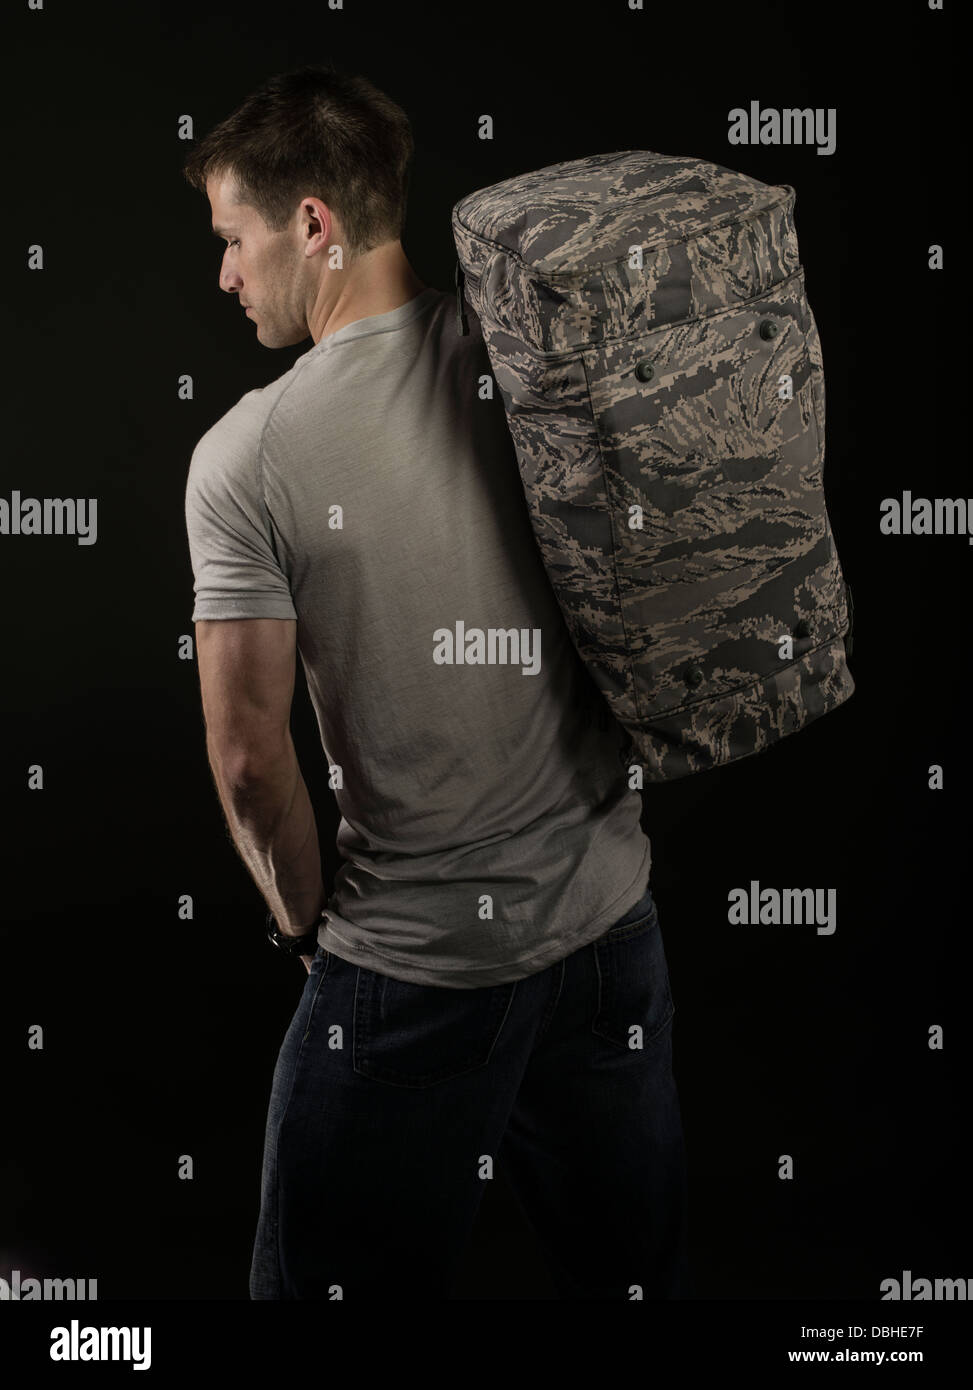 Rugged muscular Caucasian male wearing jeans and grey t-shirt carrying military style bag. Leaving home / work / - Stock Image